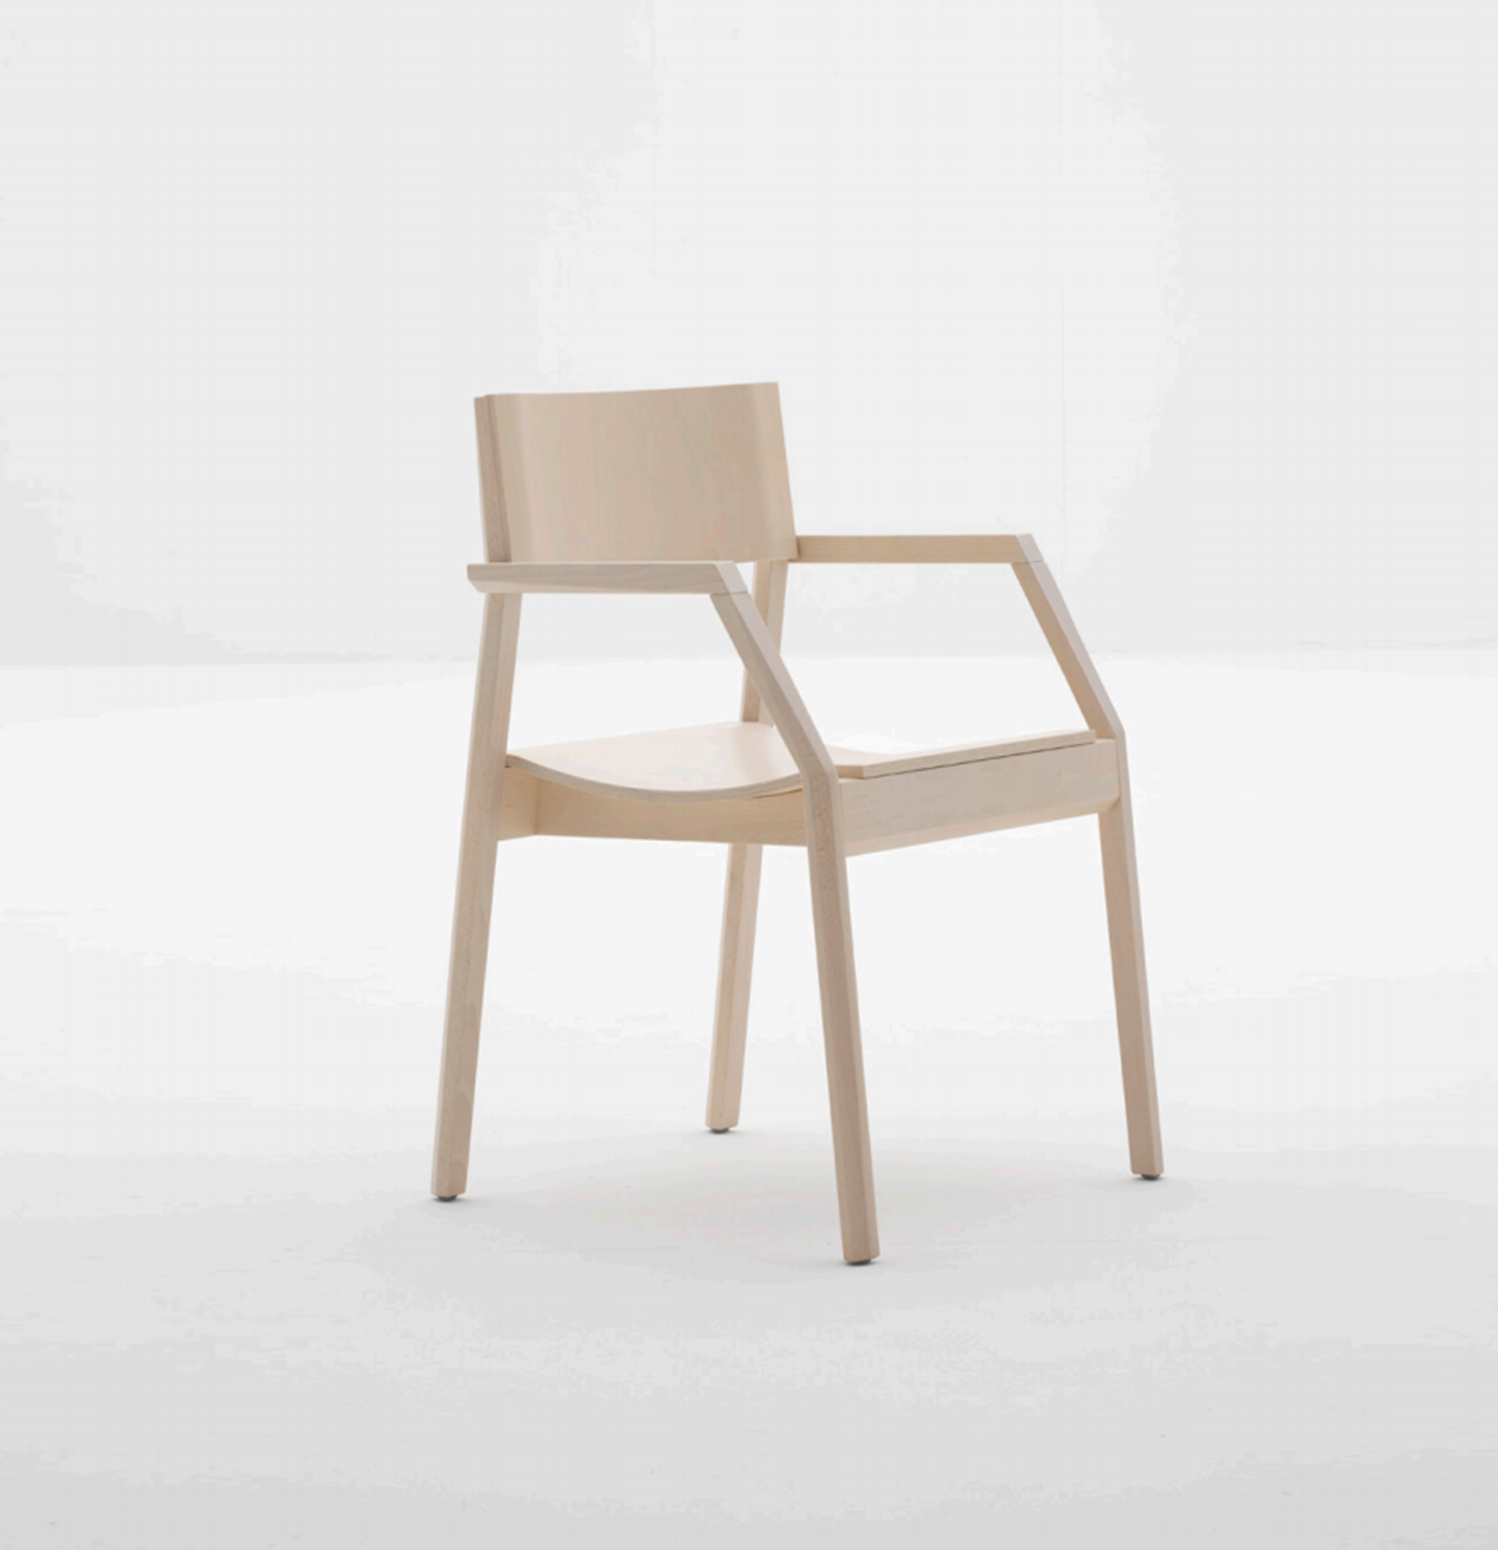 Designed by Enzo Berti and crafted in solid Beech wood, Maki's frame combines clean lines with a softly curved seat.